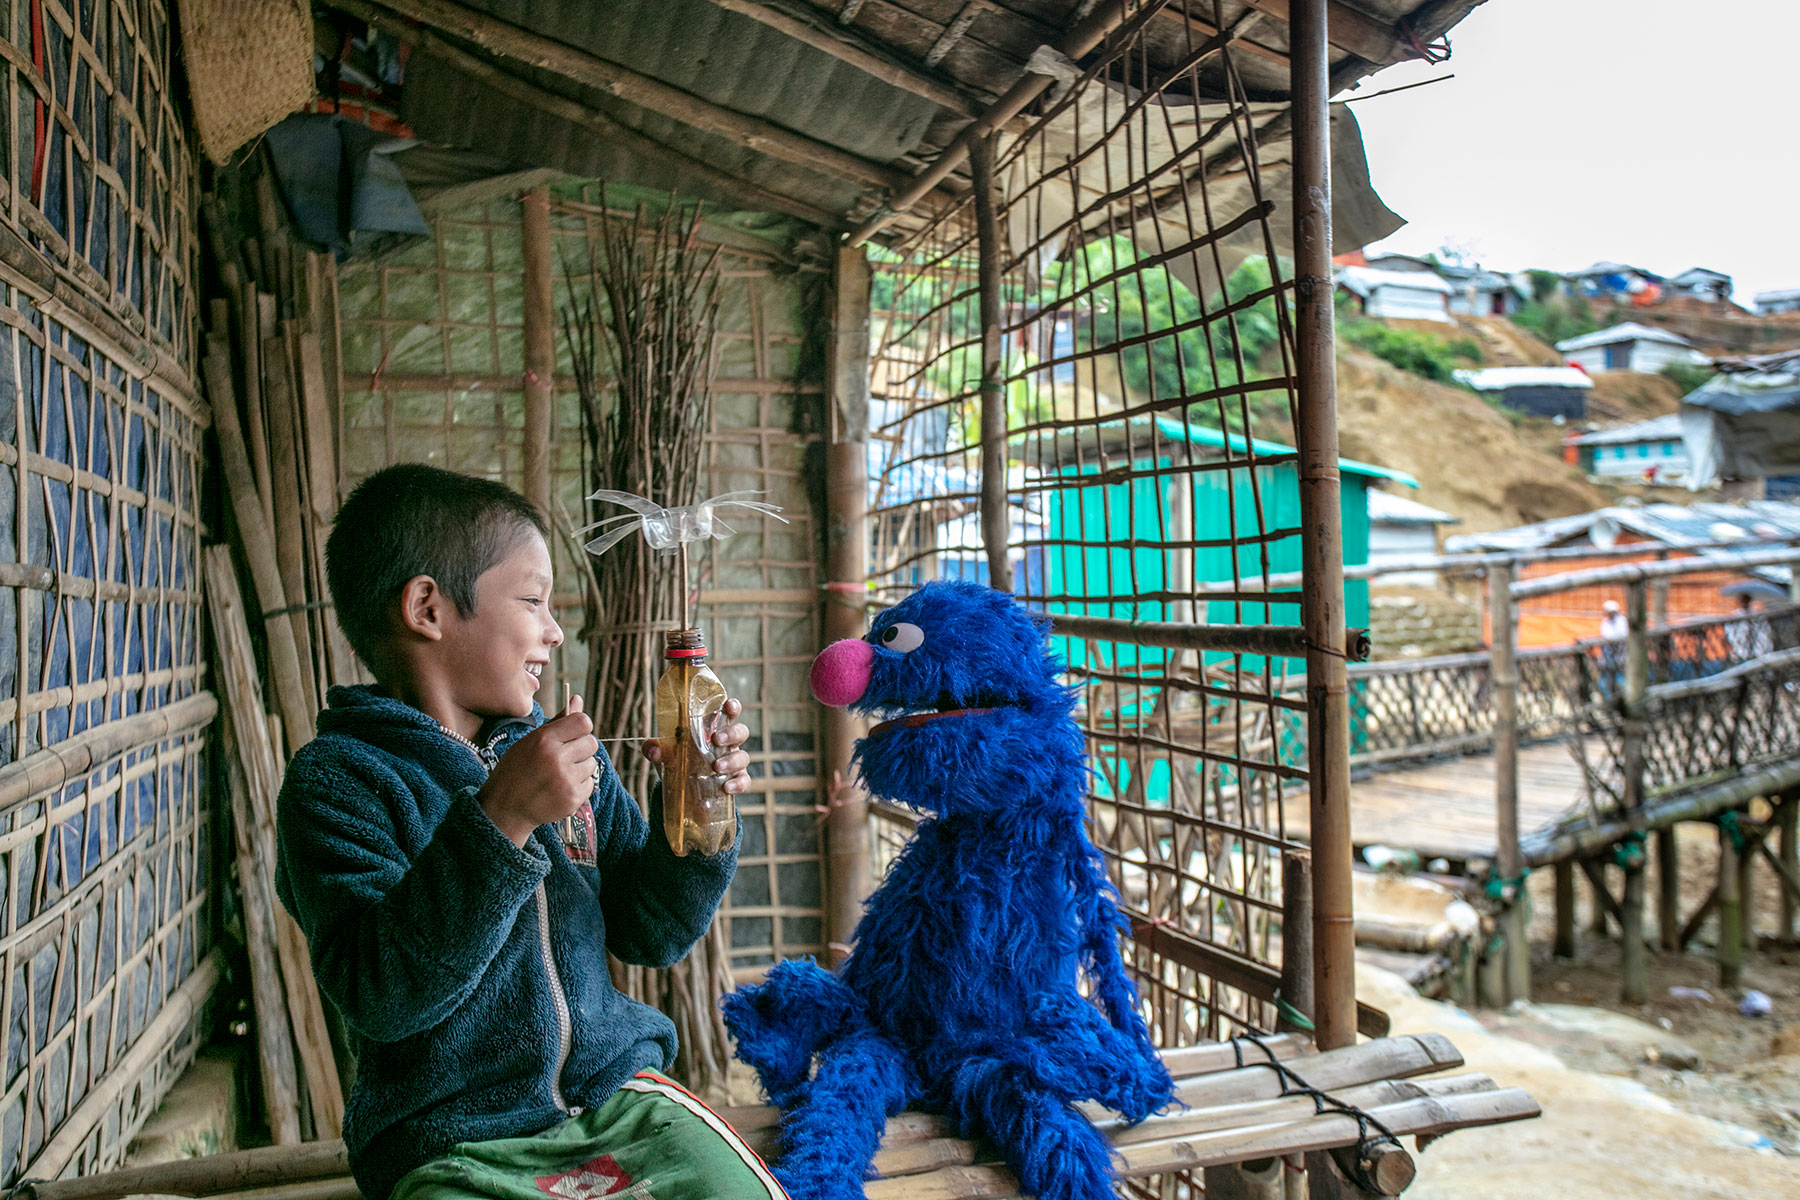 The New York Times: 'R' is for Rohingya: Sesame Street Creates New Muppets for Refugees